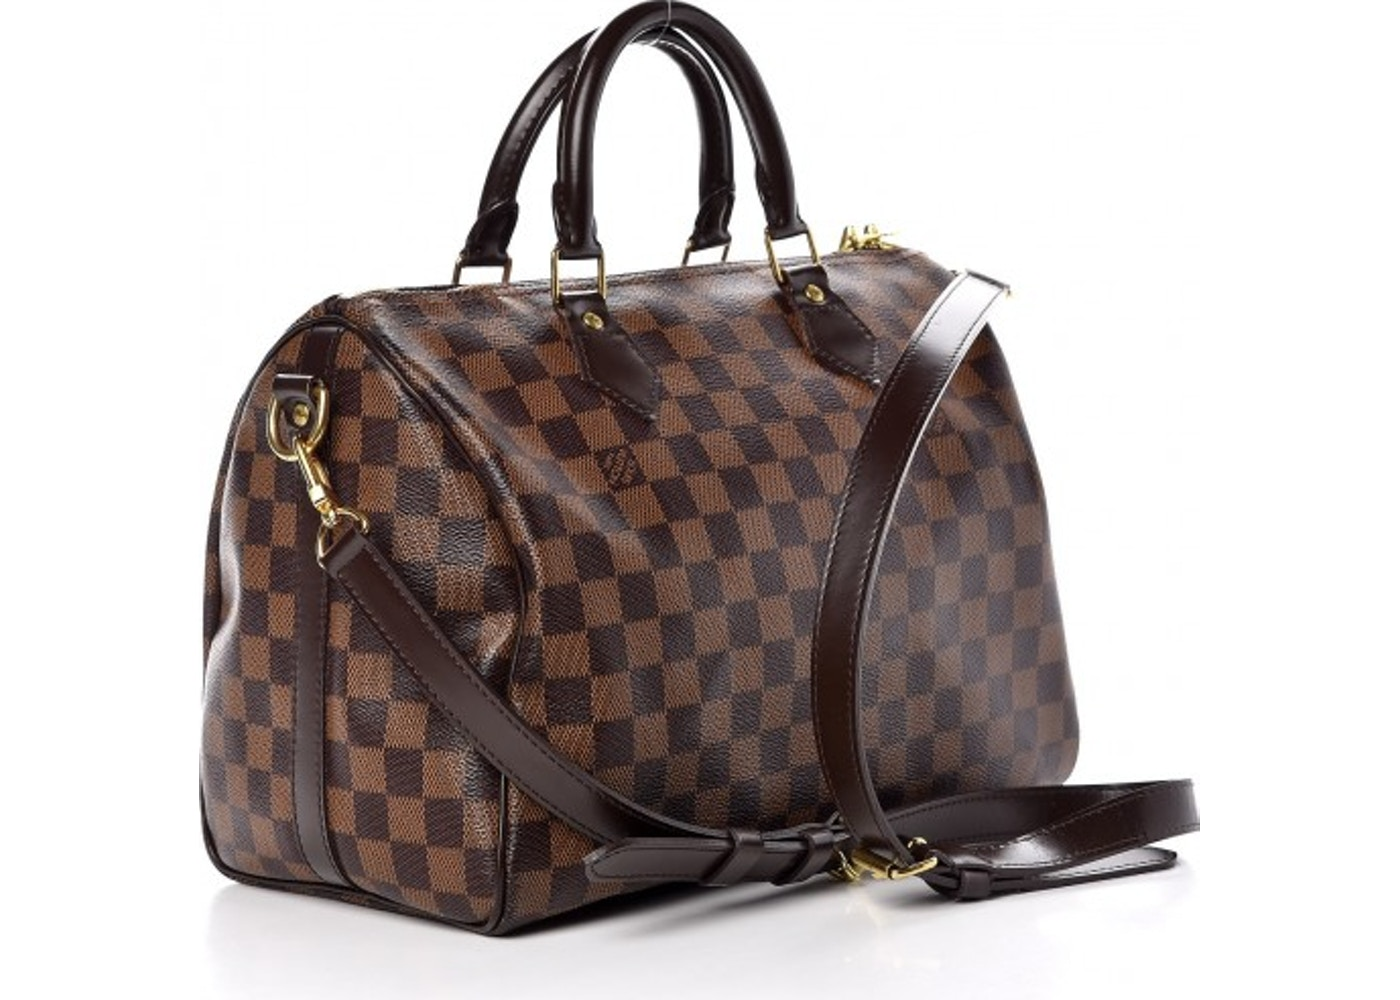 bb82000e8 Lv Speedy Bandouliere Damier 30 Price | Stanford Center for ...